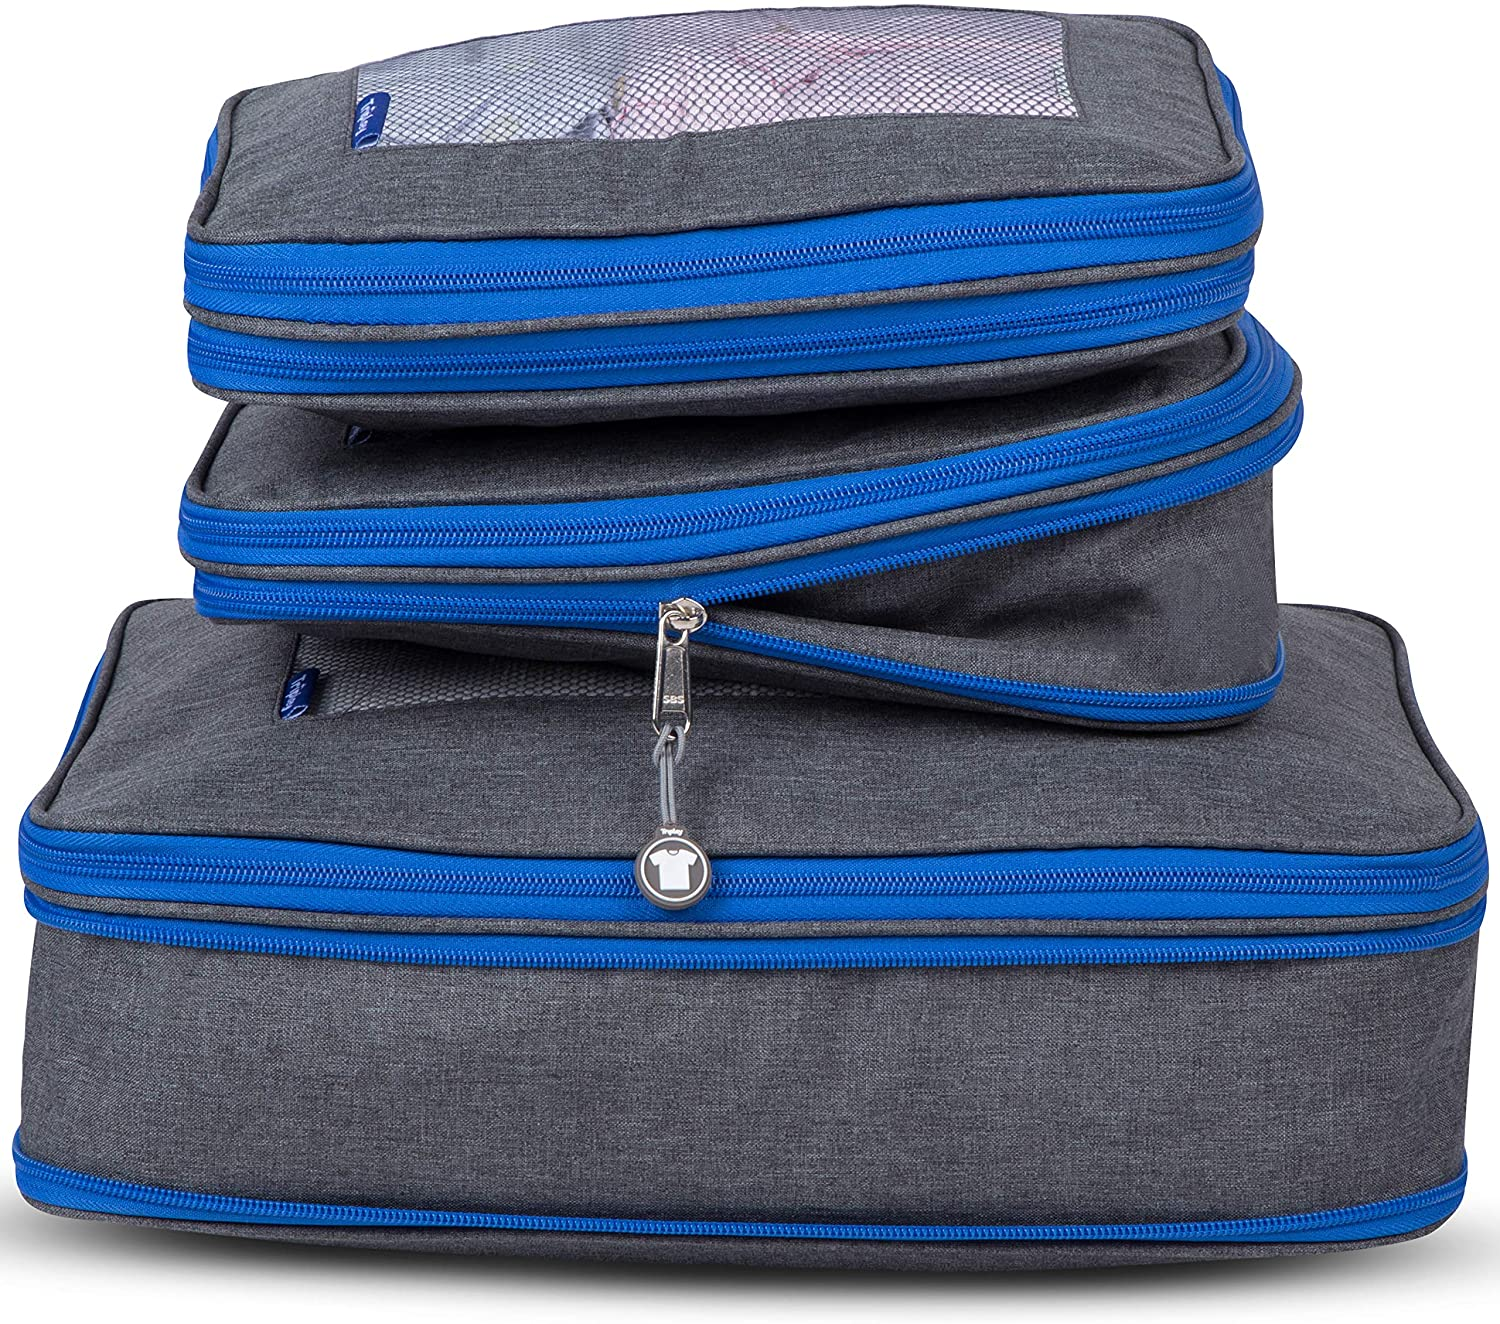 Tripley Compression Packing Cubes